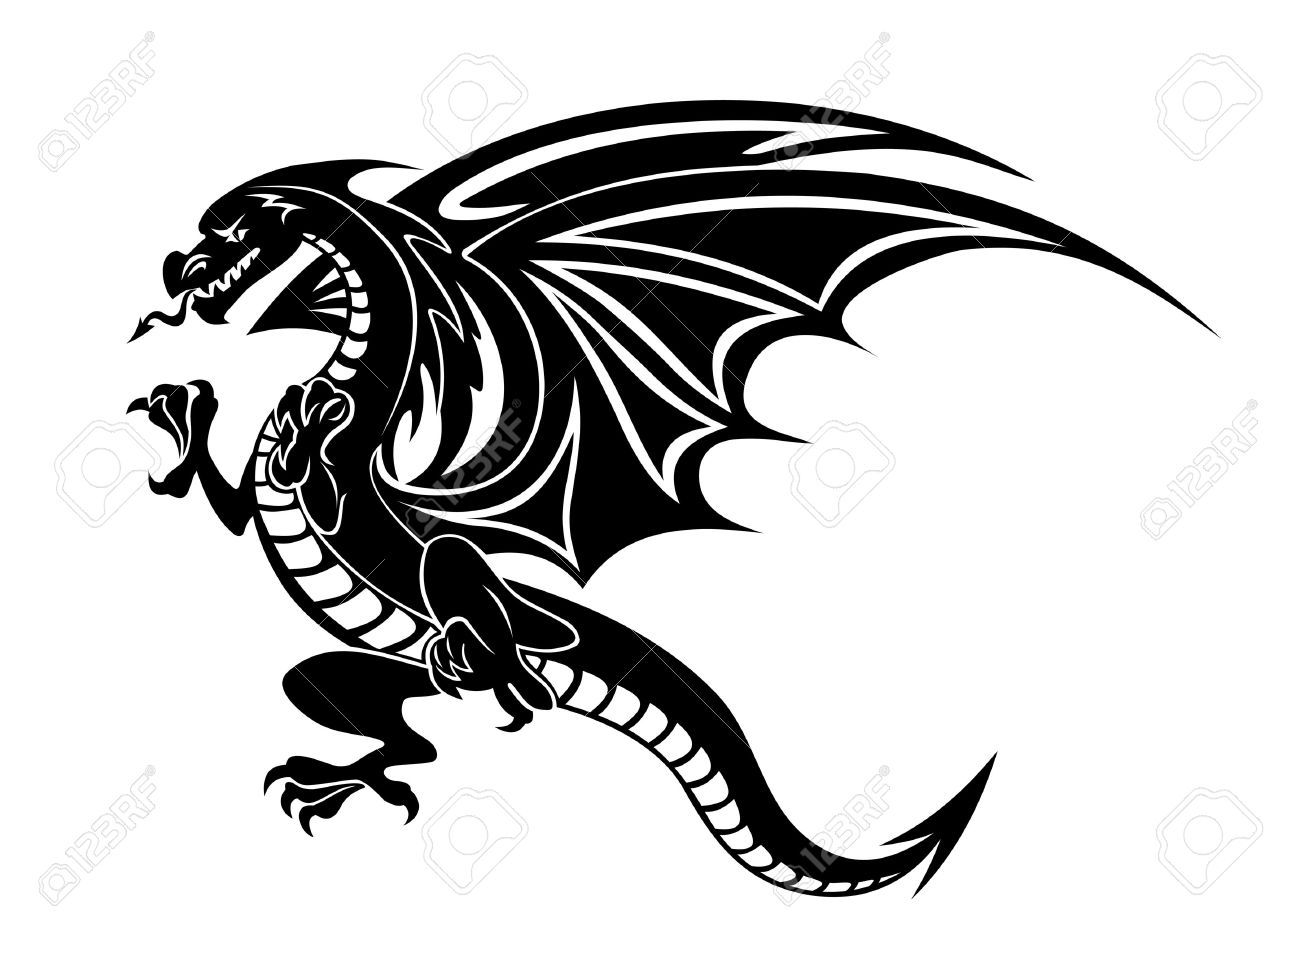 3 828 dragon fire stock vector illustration and royalty free